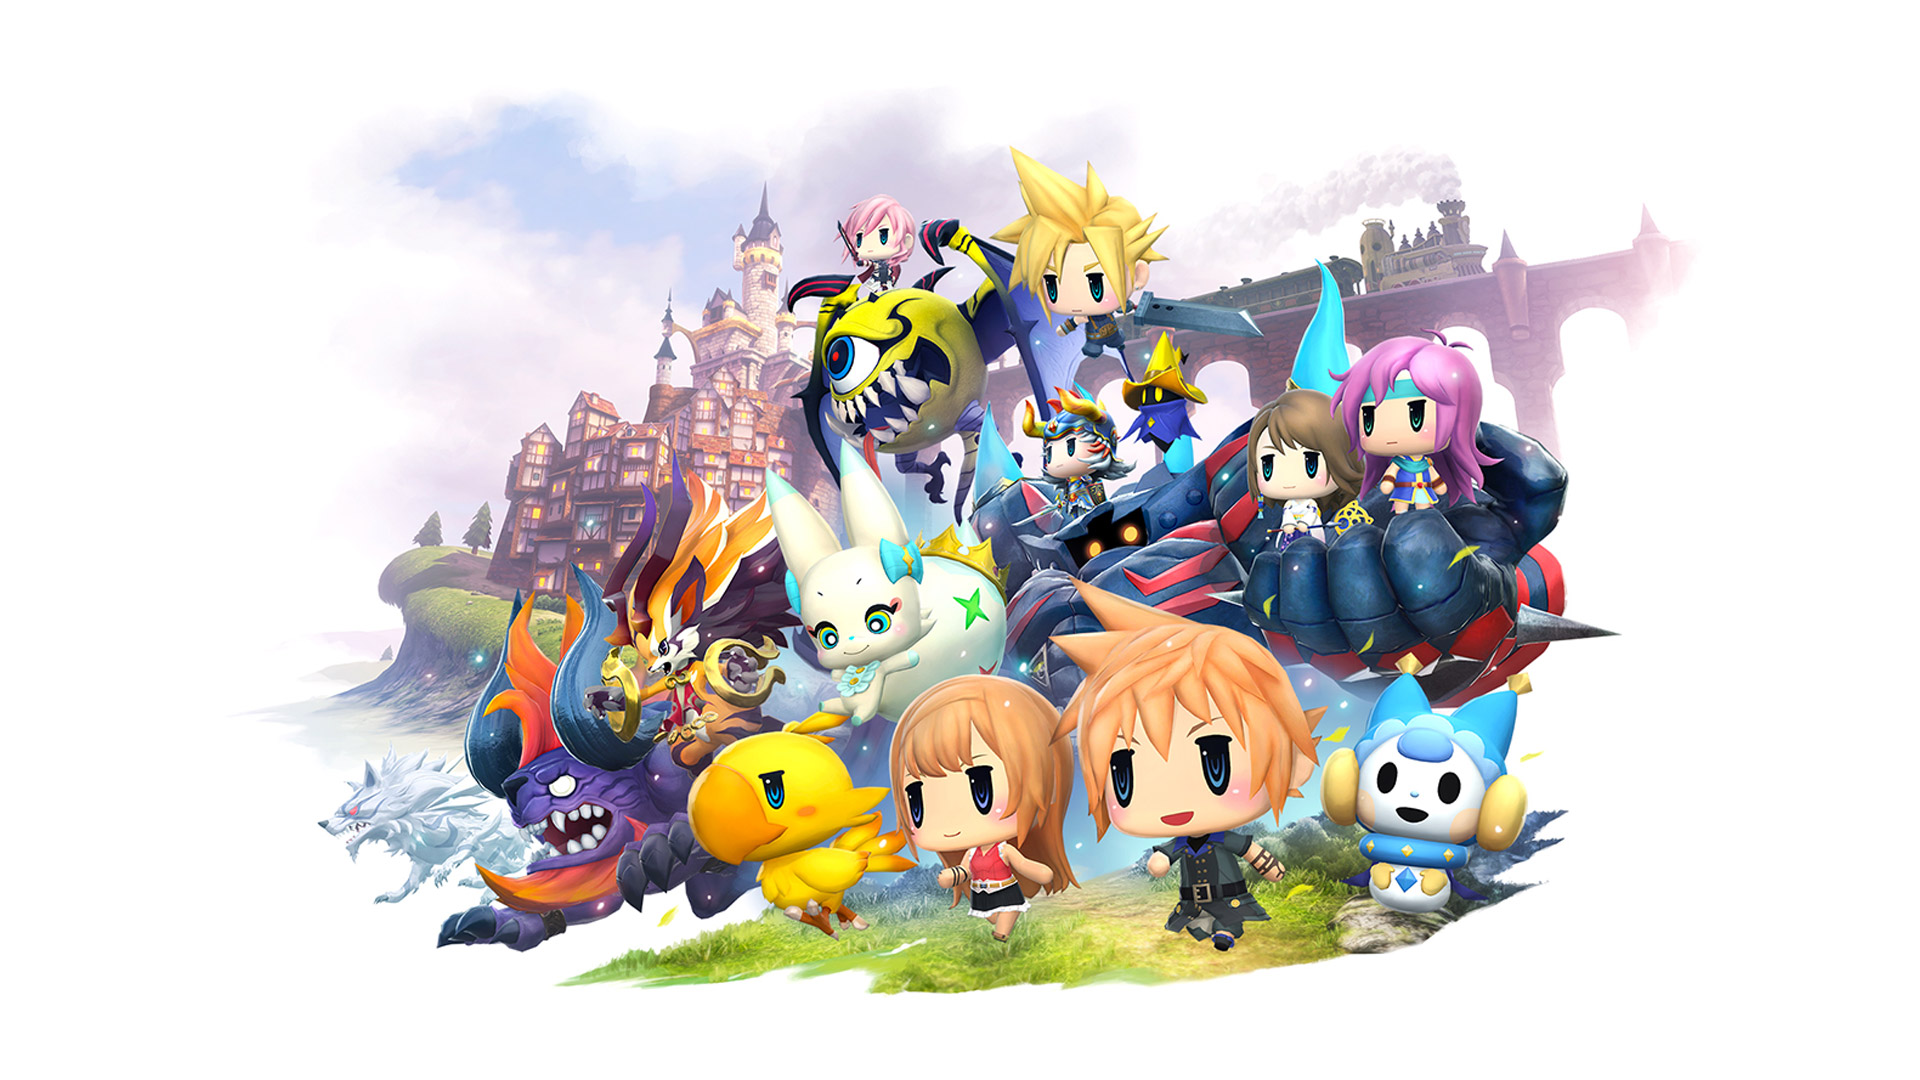 Free World of Final Fantasy Wallpaper in 1920x1080